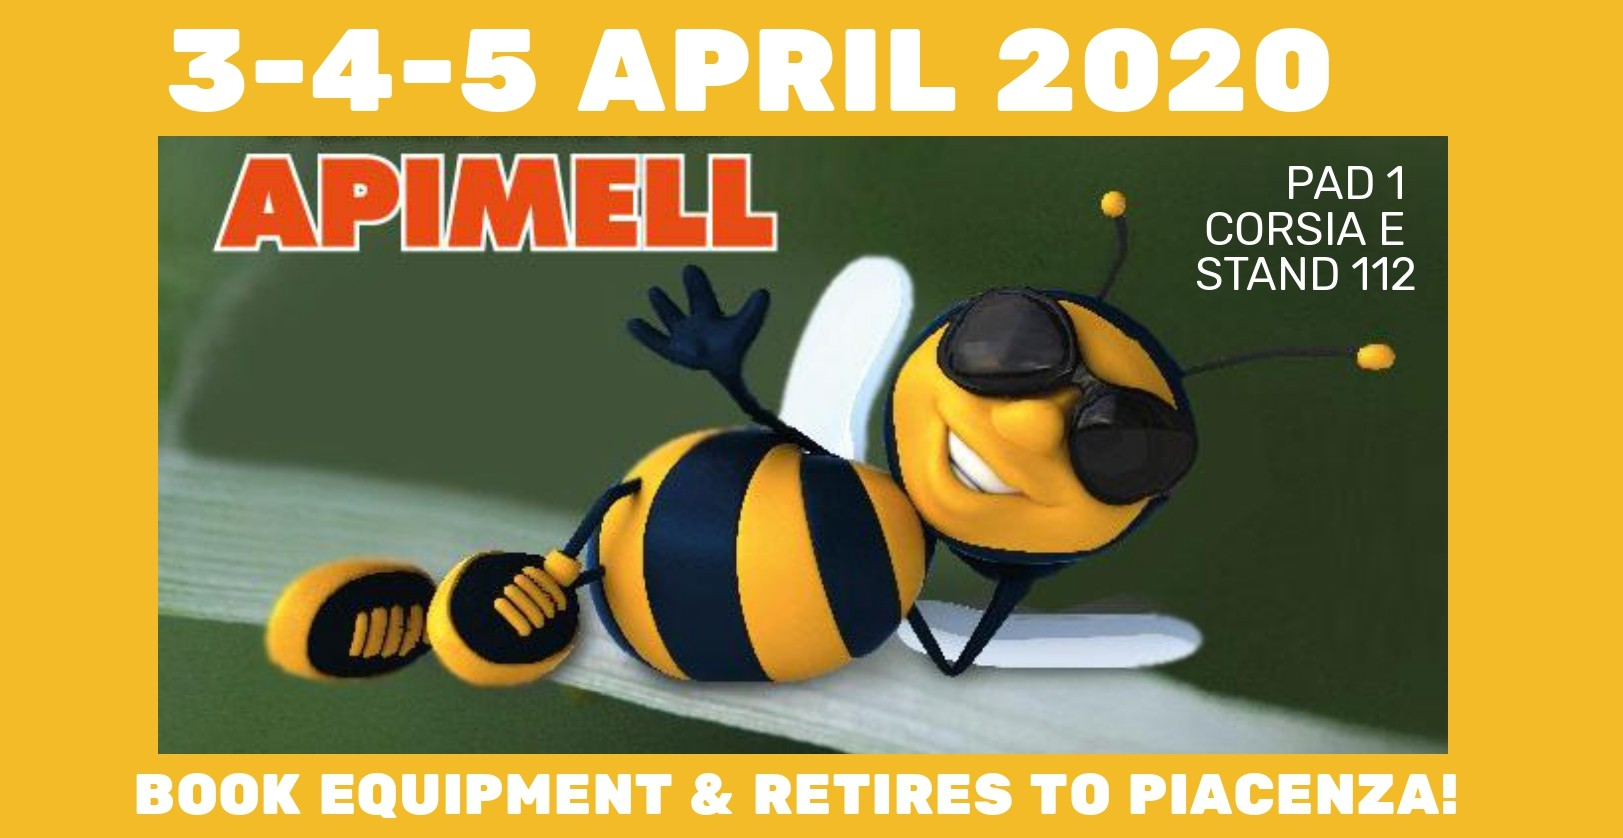 postponed-to-3-4-5-April-Apimell-exhibition-2020